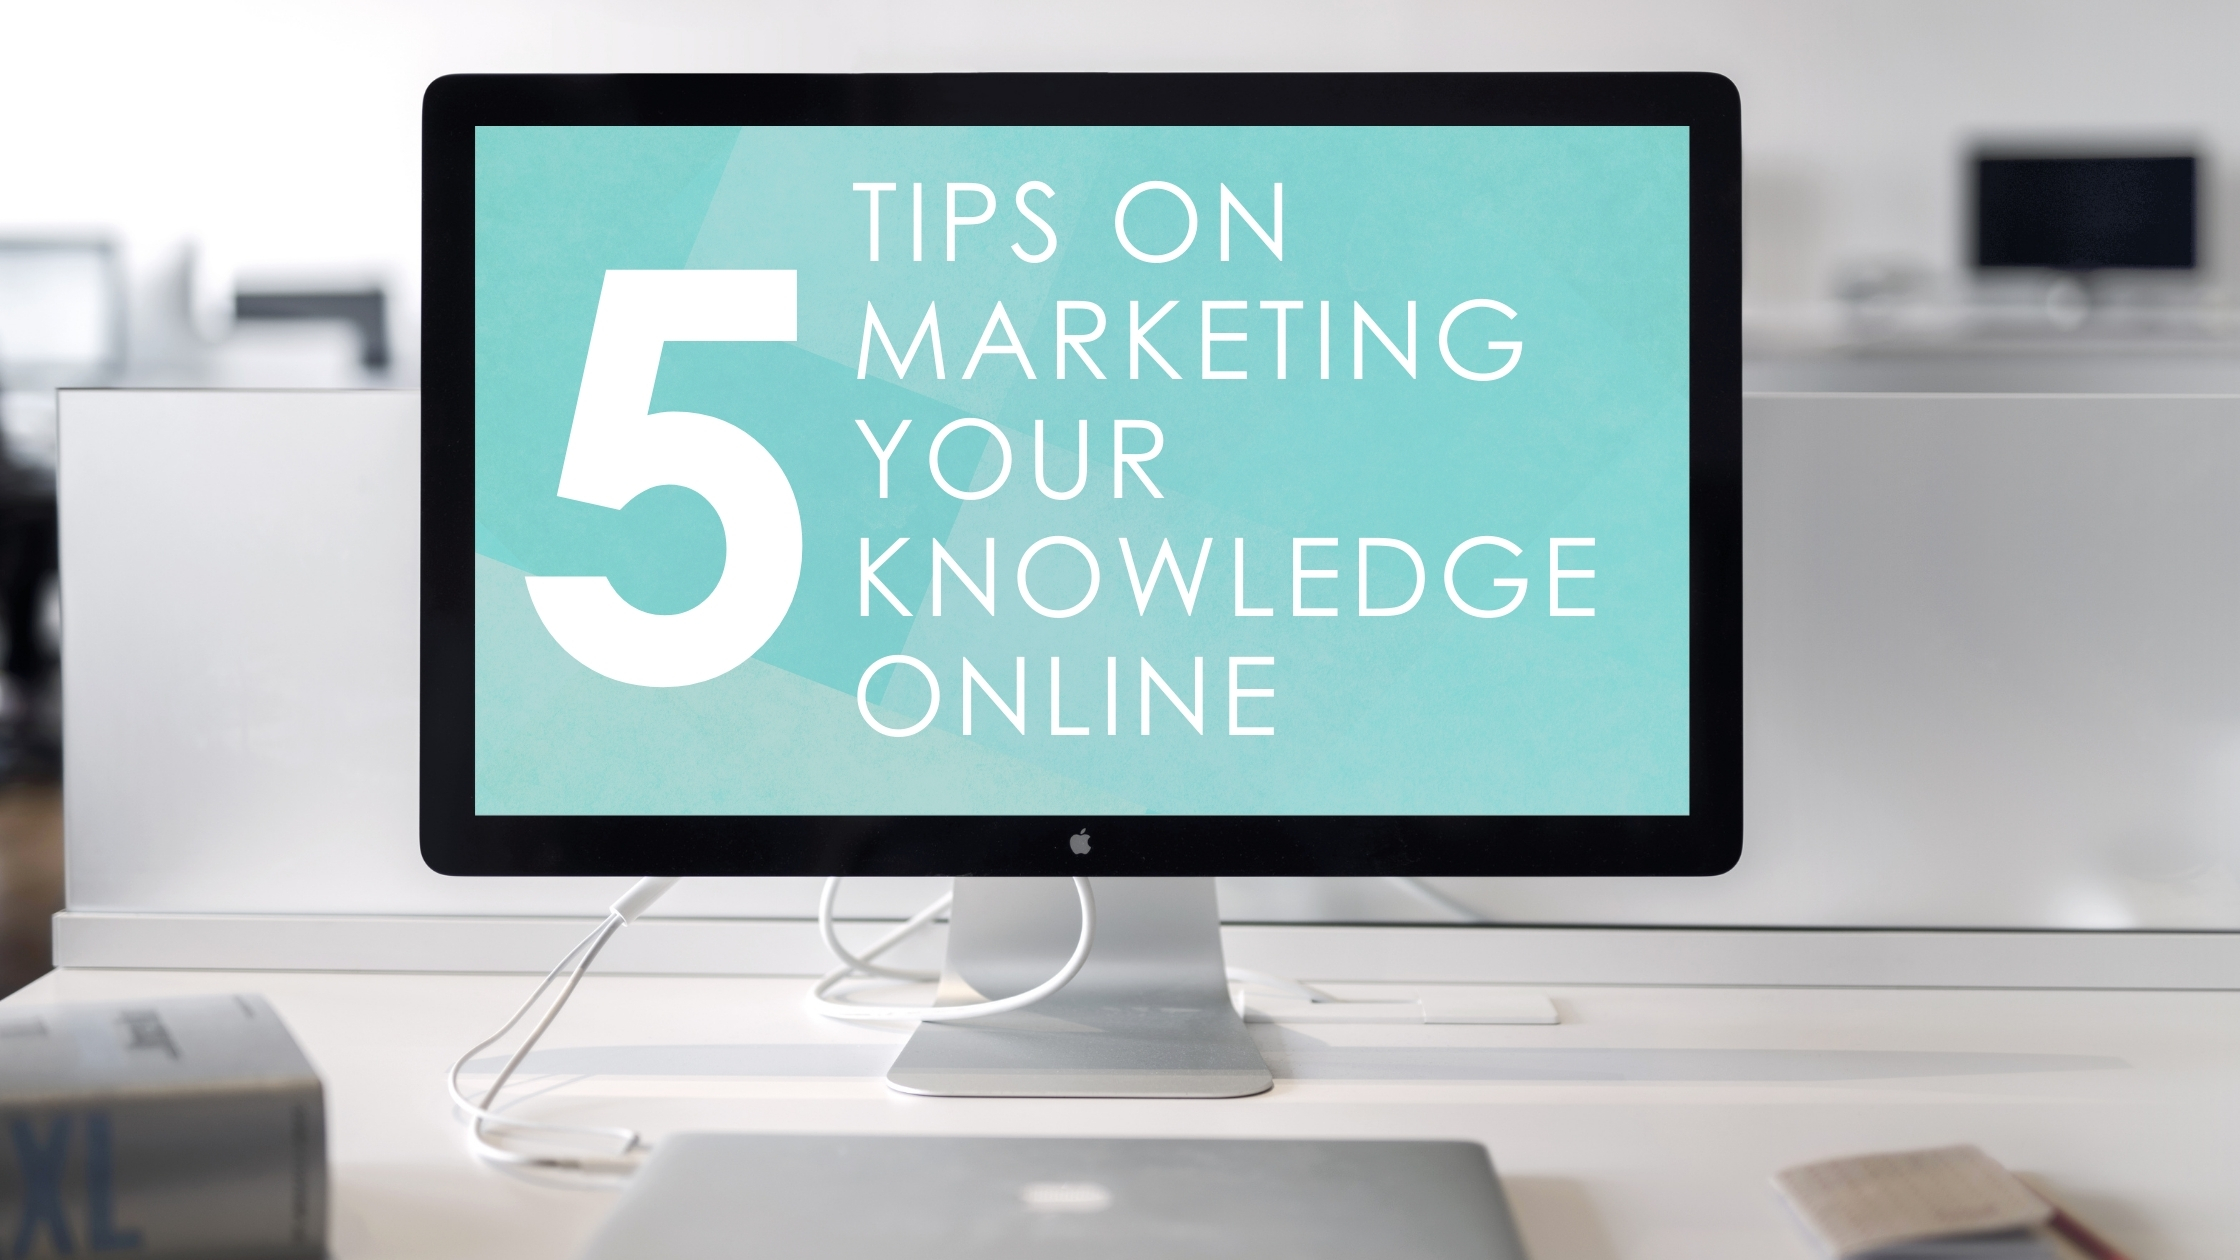 Five Marketing Tips on Selling your Knowledge Online